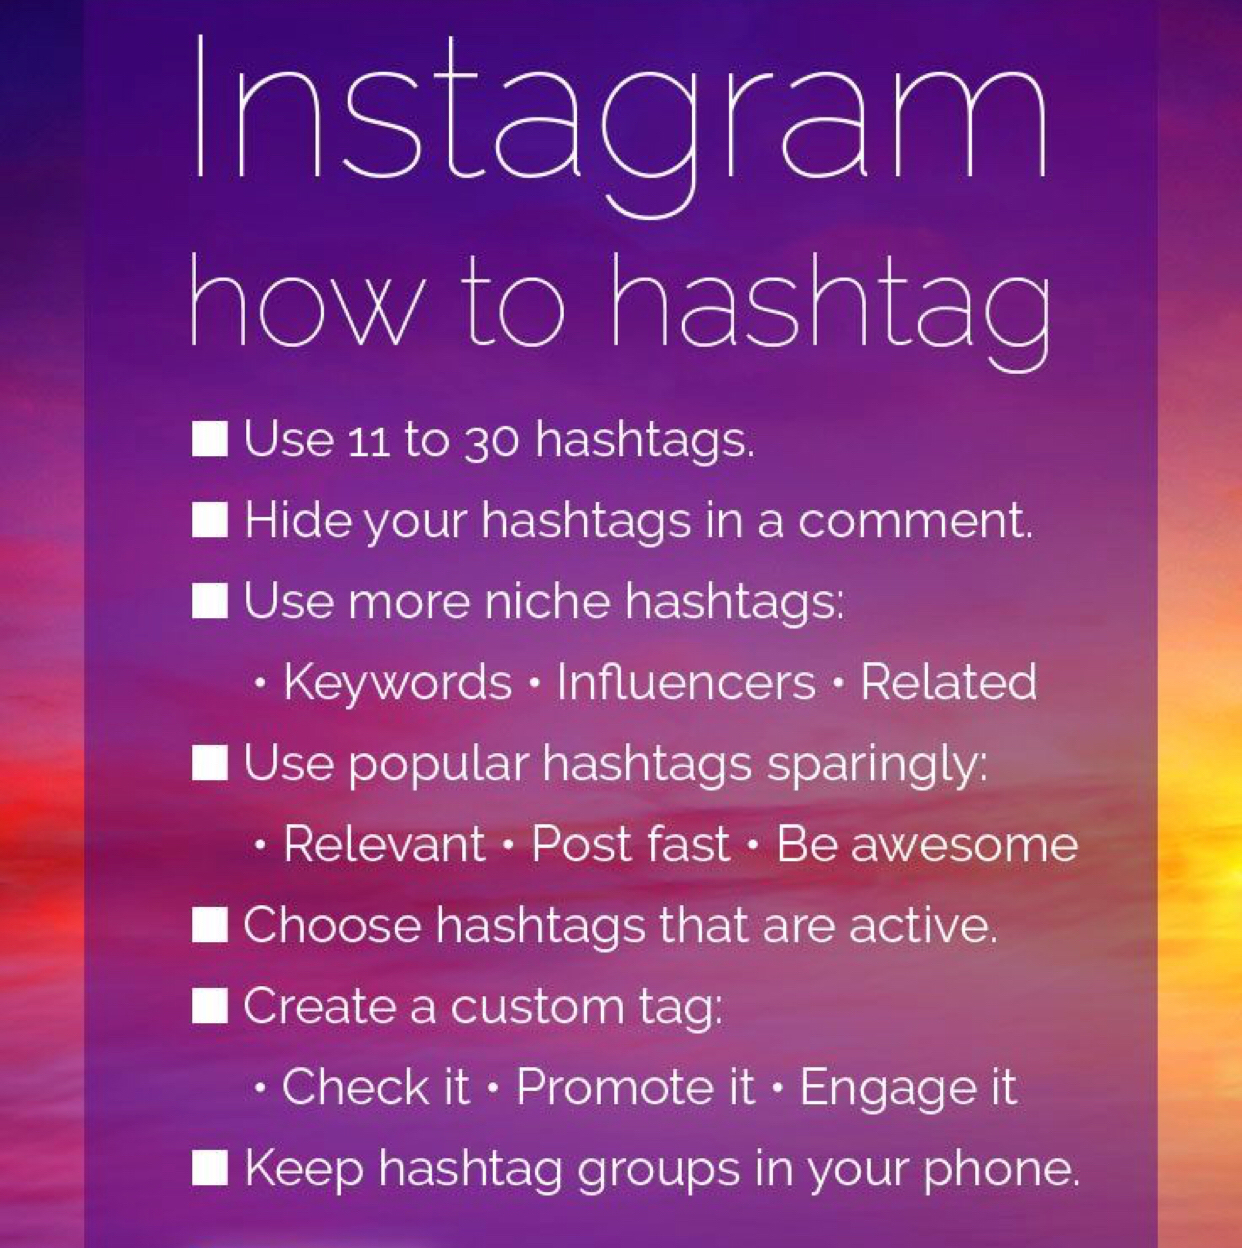 how to hashtag on instagram